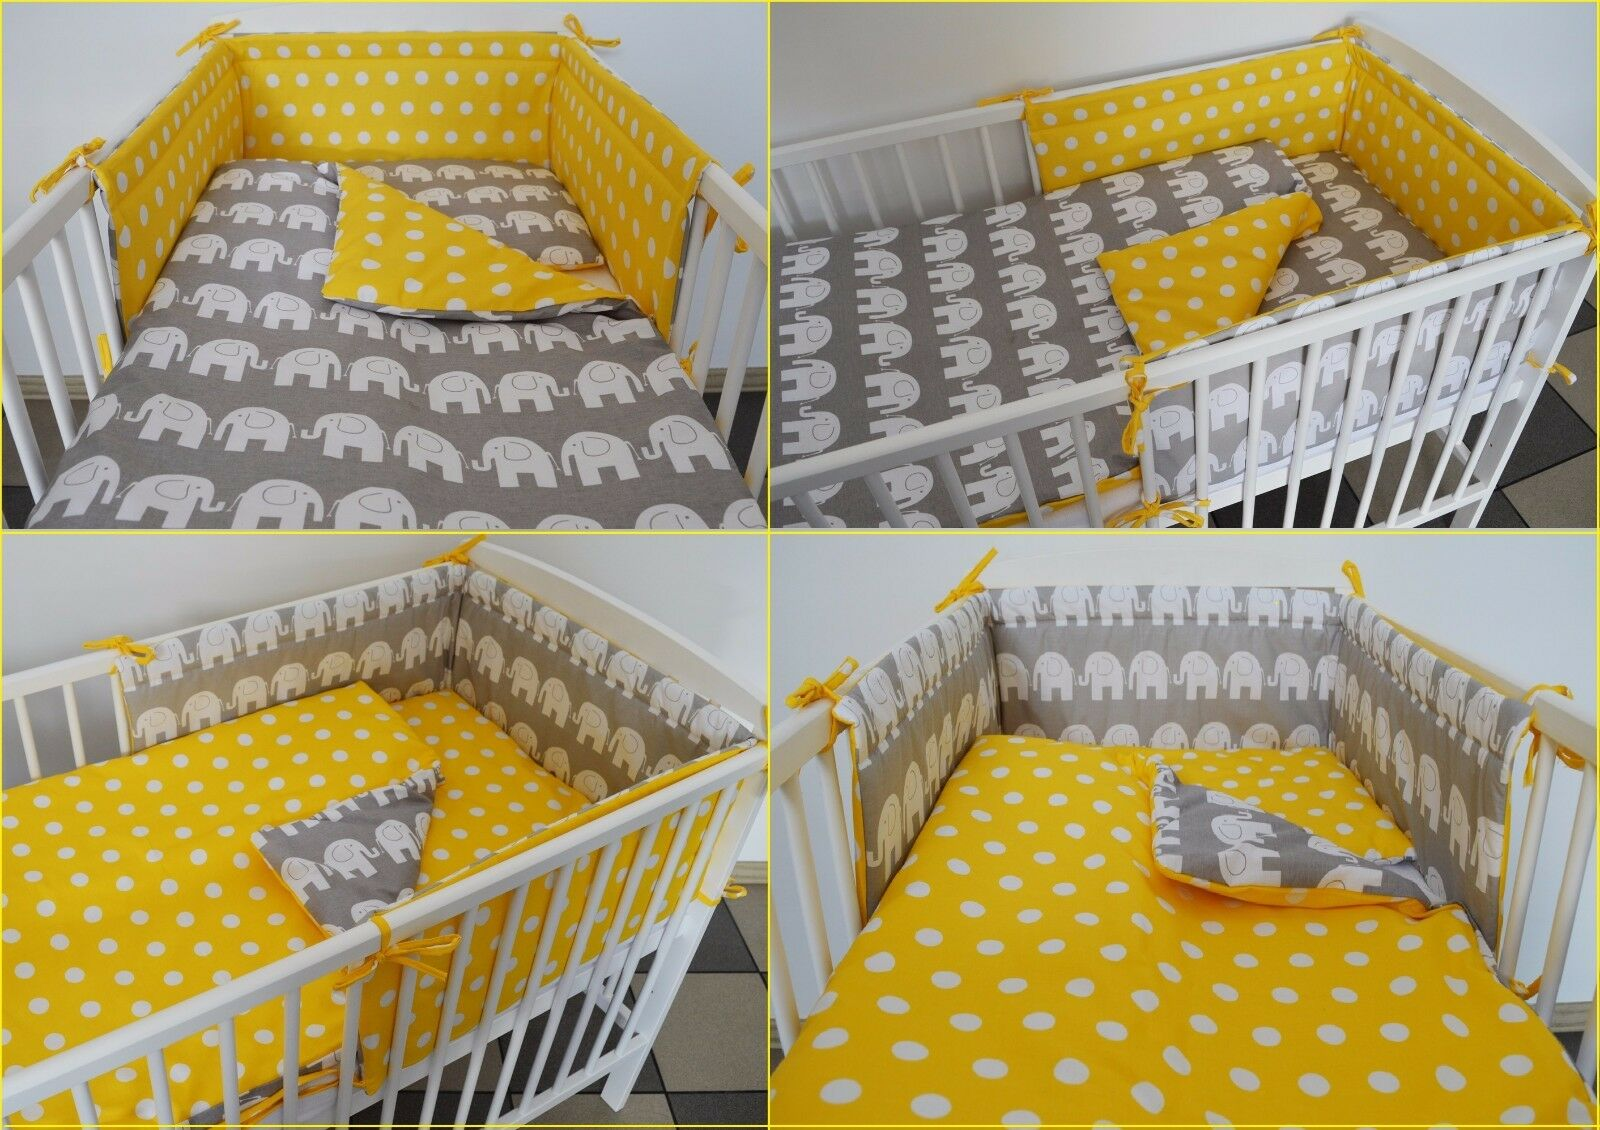 Grey Toddler Bed Bedding : Pc grey yellow baby bedding set cot bed bumper